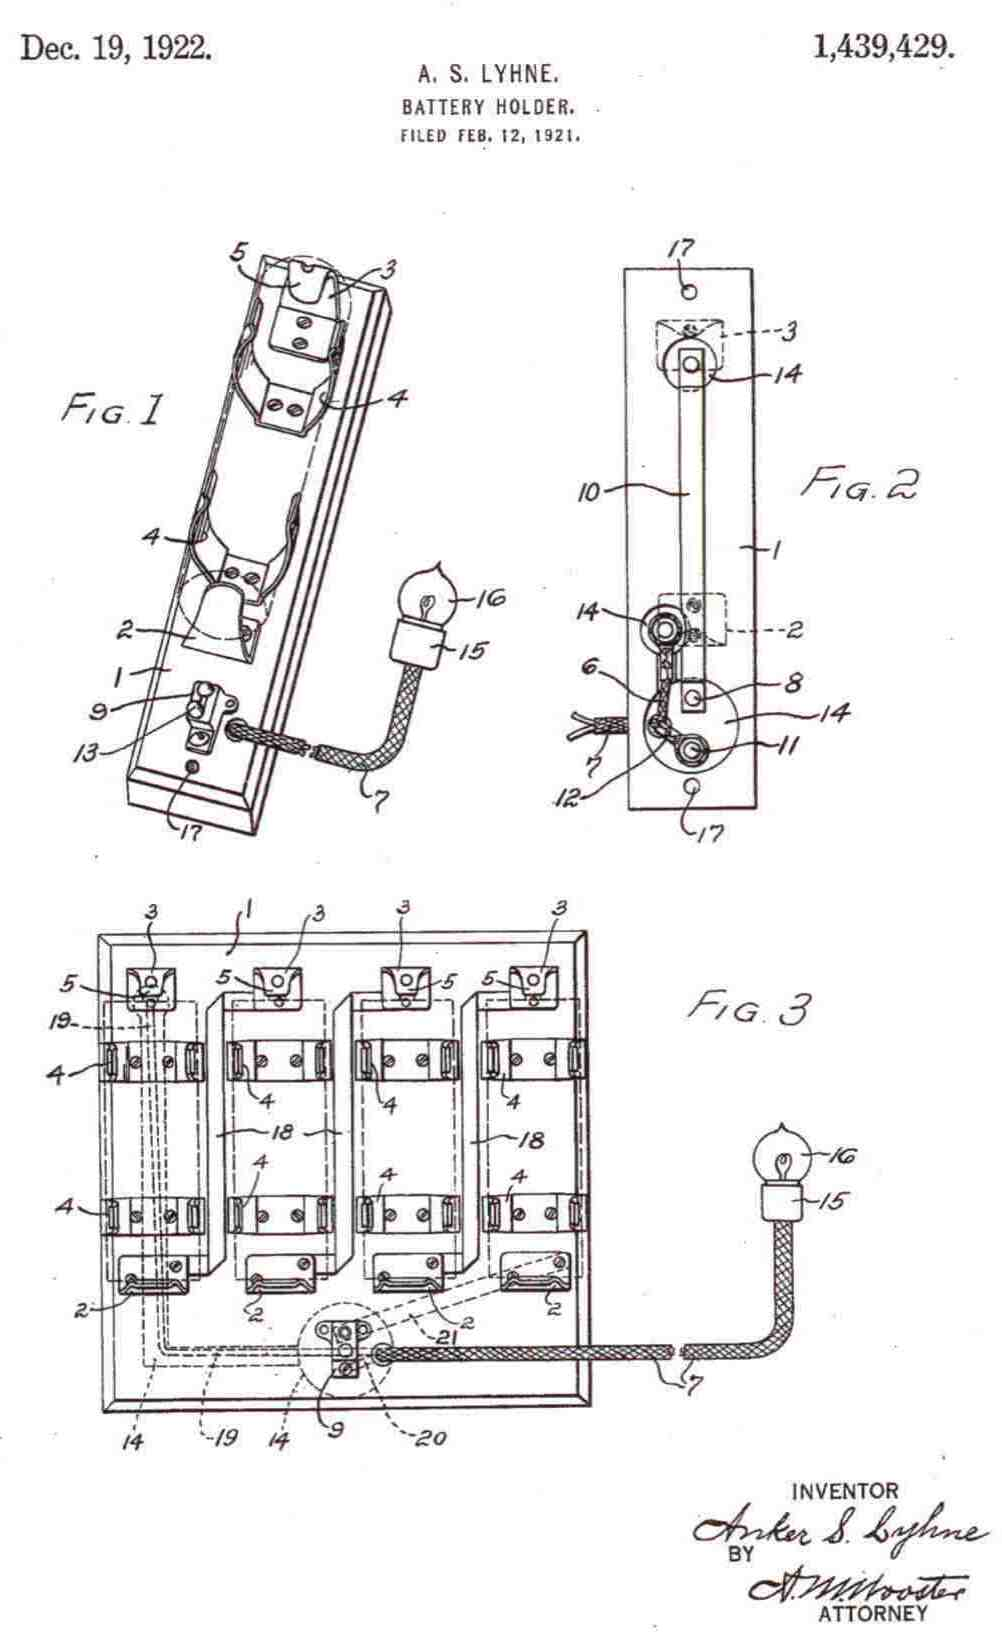 1922 battery holder with spring arms